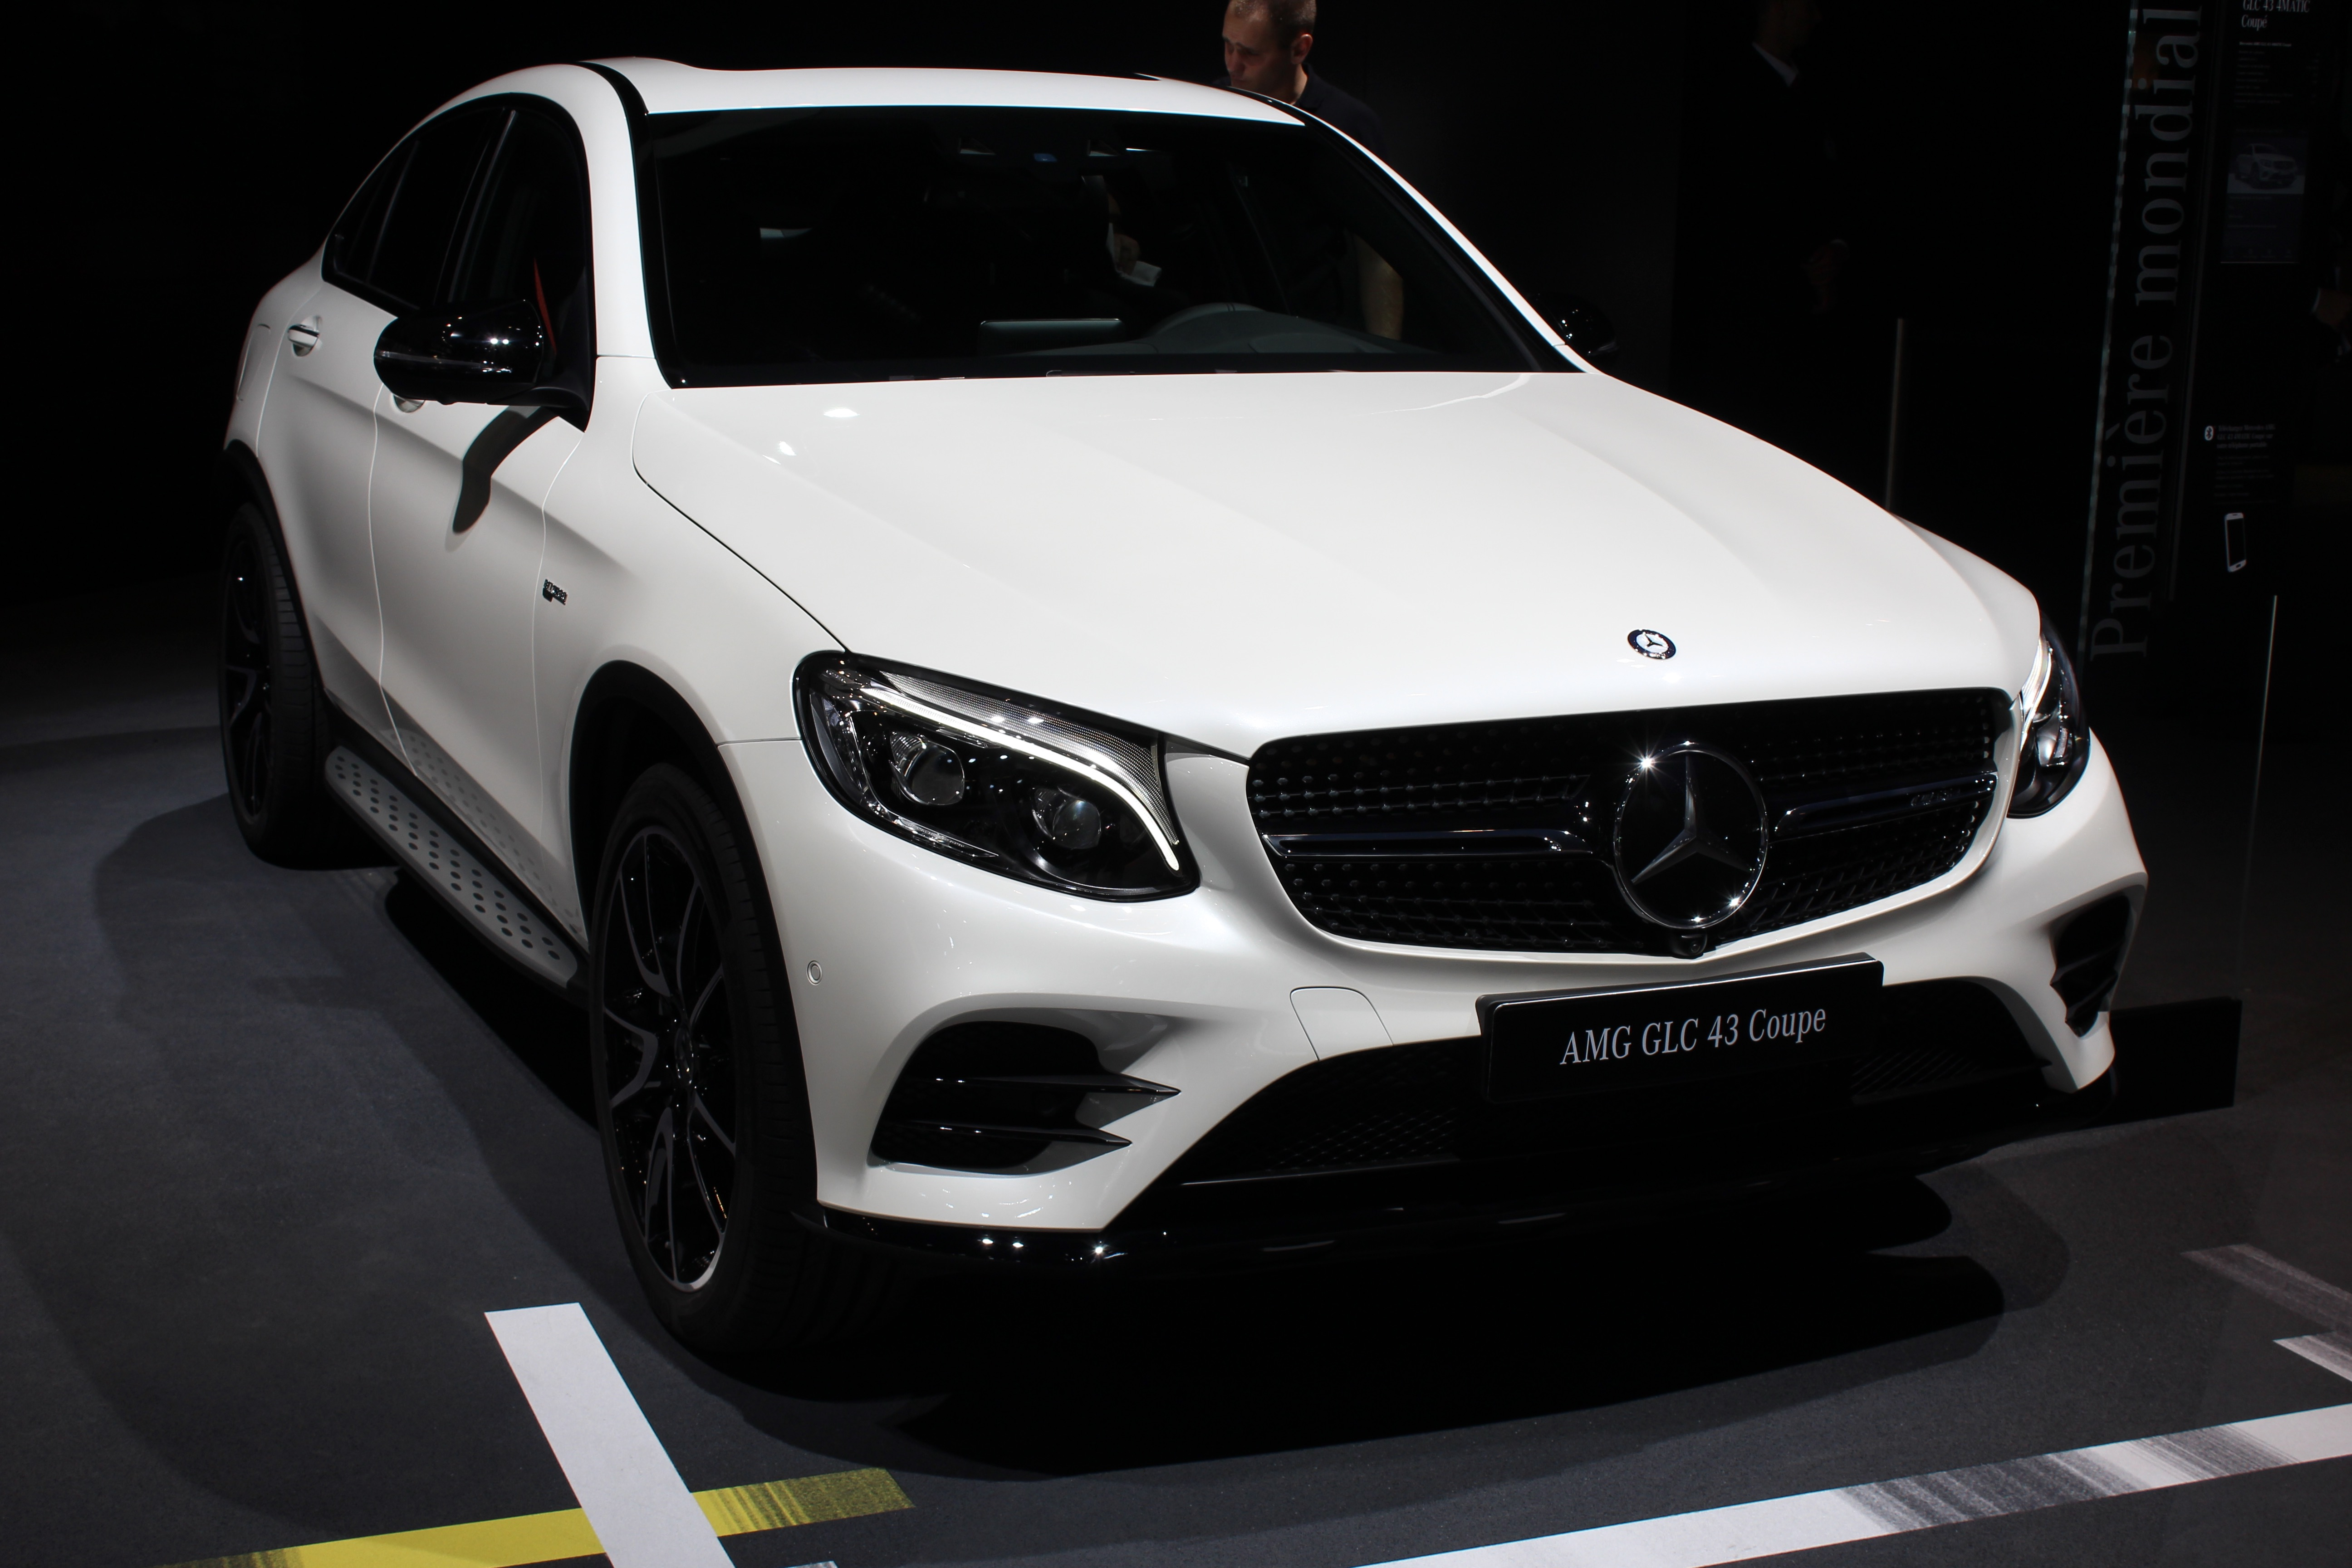 2017 mercedes amg glc 43 4matic coupe car reviews driver 39 s seat. Black Bedroom Furniture Sets. Home Design Ideas